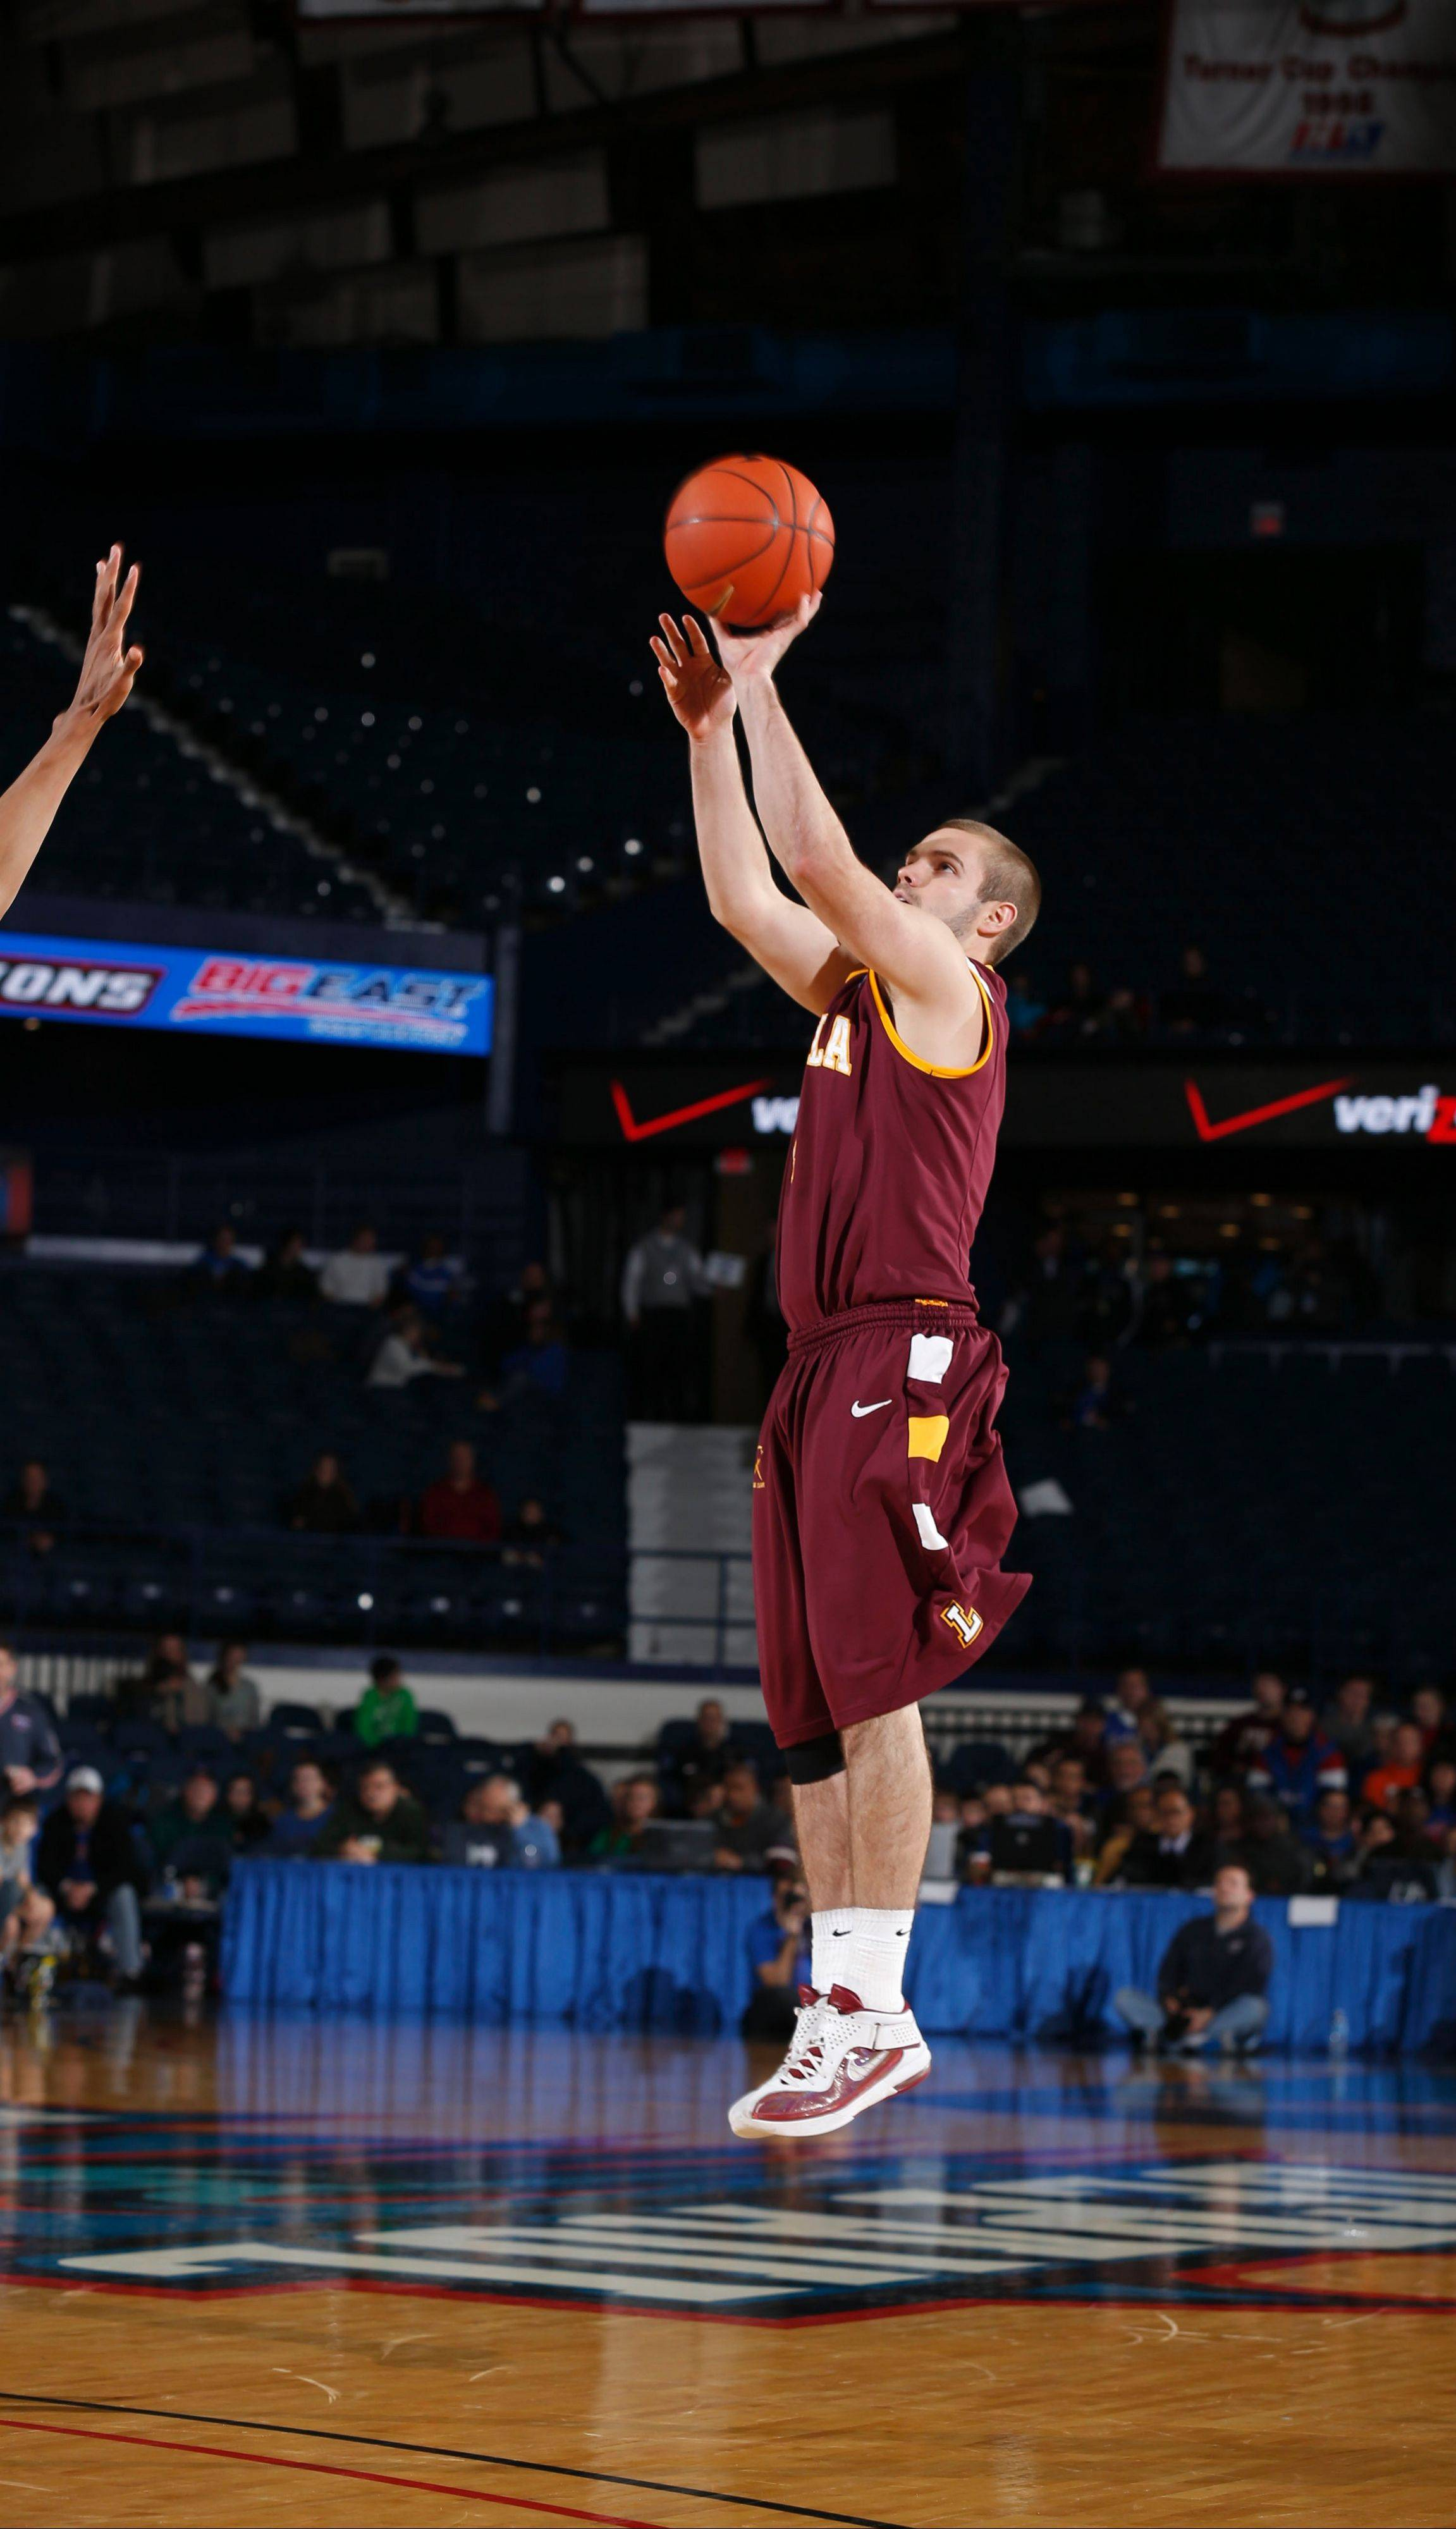 Cully Payne elevates for a jumper in Loyola's recent victory over DePaul.